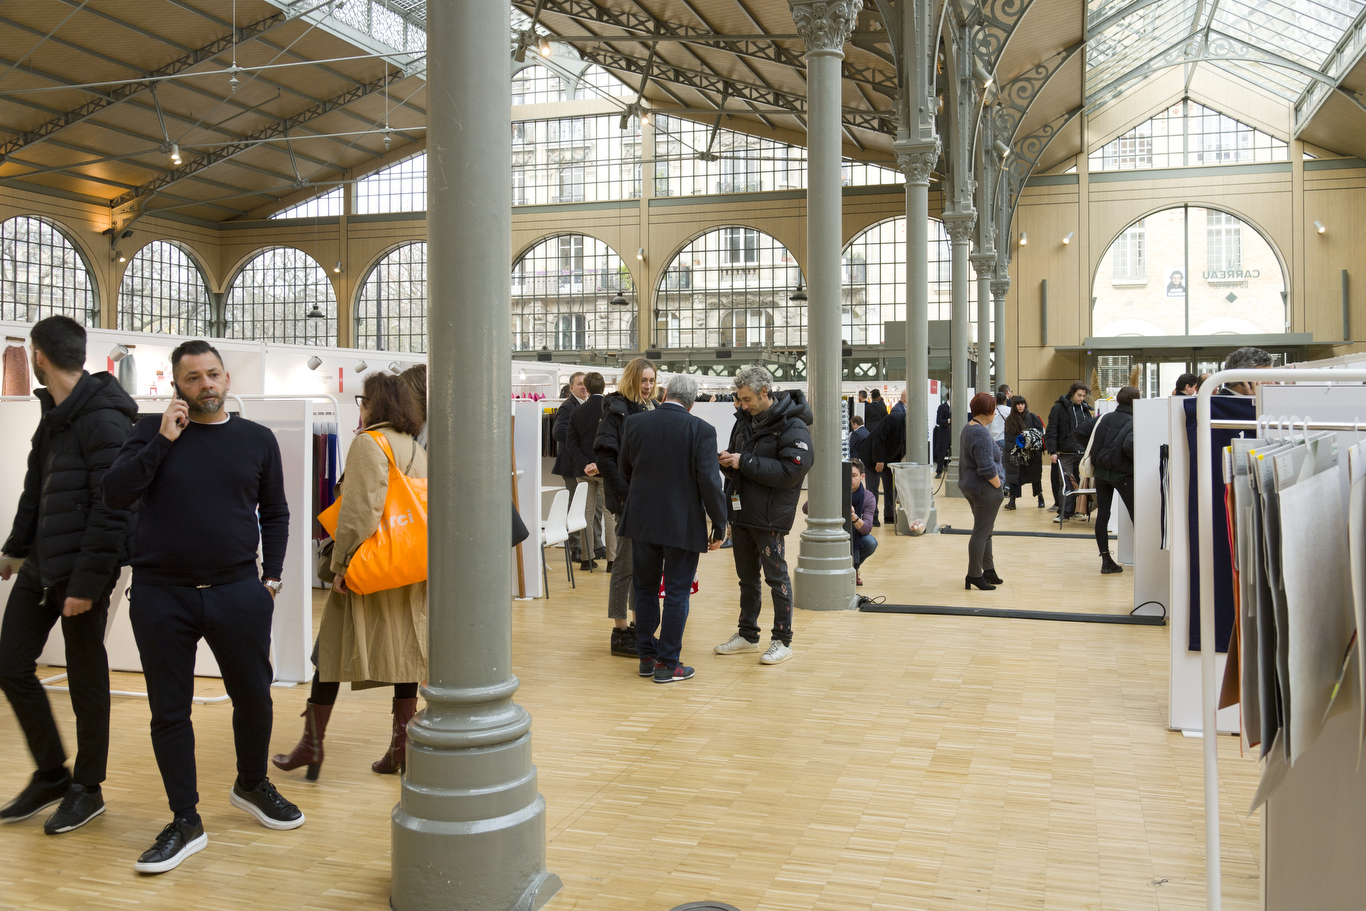 Blossom Premiere Vision is held at the Carreau du Temple in Paris